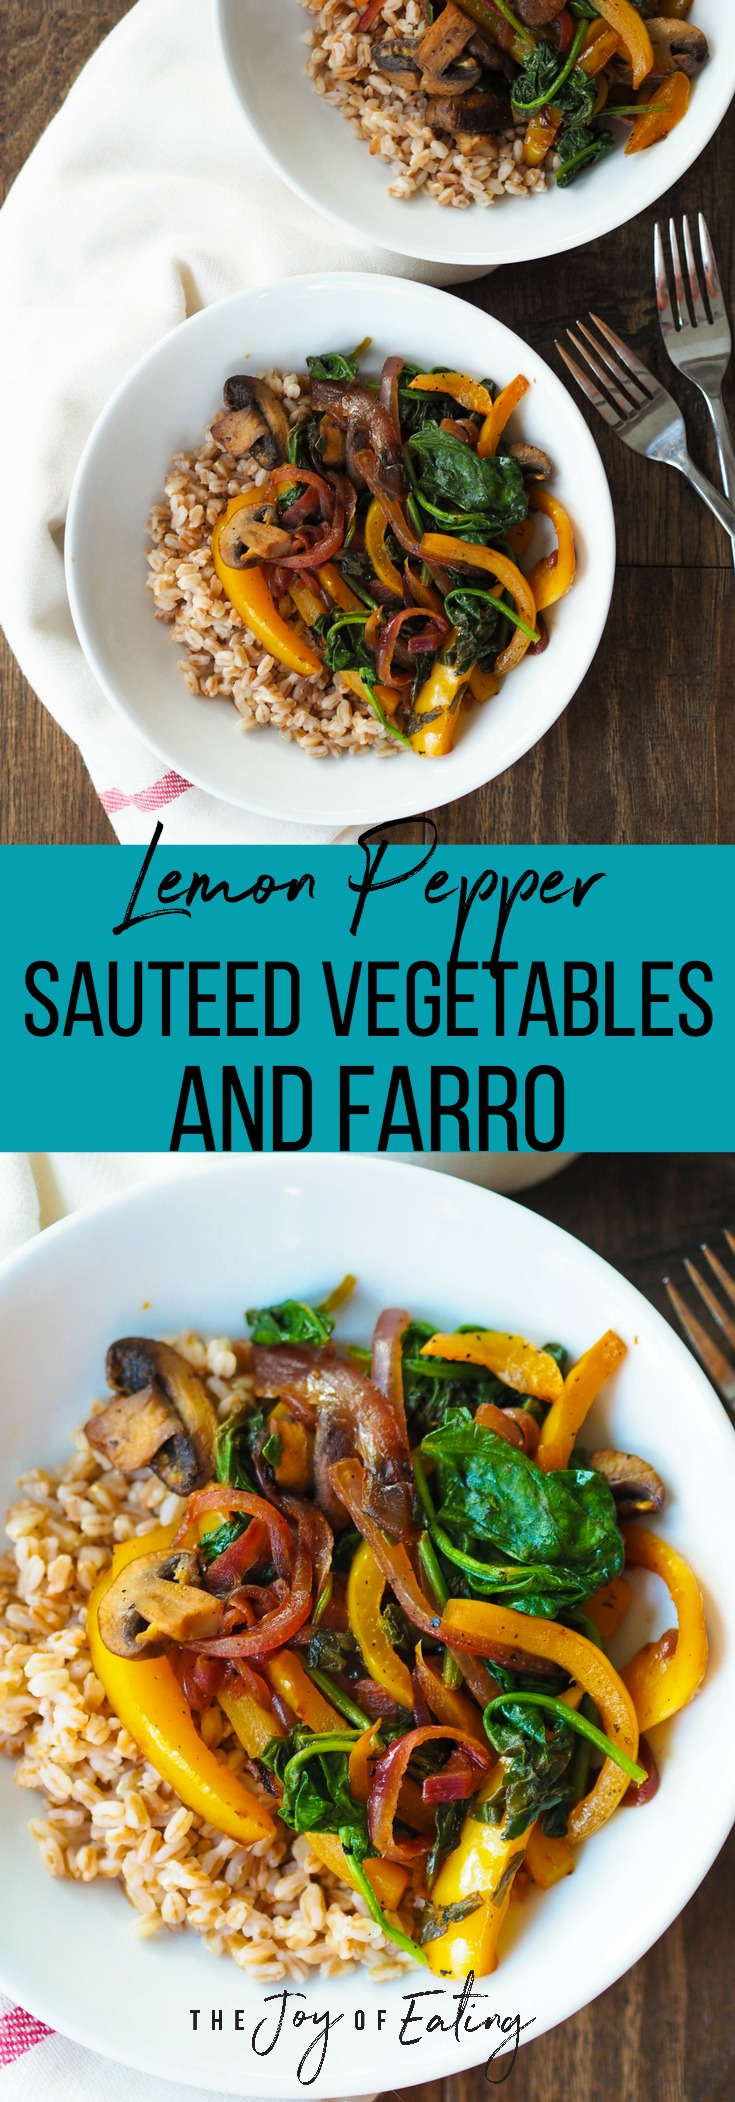 Easy Black Pepper and Lemon Sauteed Vegetables with Farro is a super tasty vegan meal! Takes less than 30 minutes of prep time!